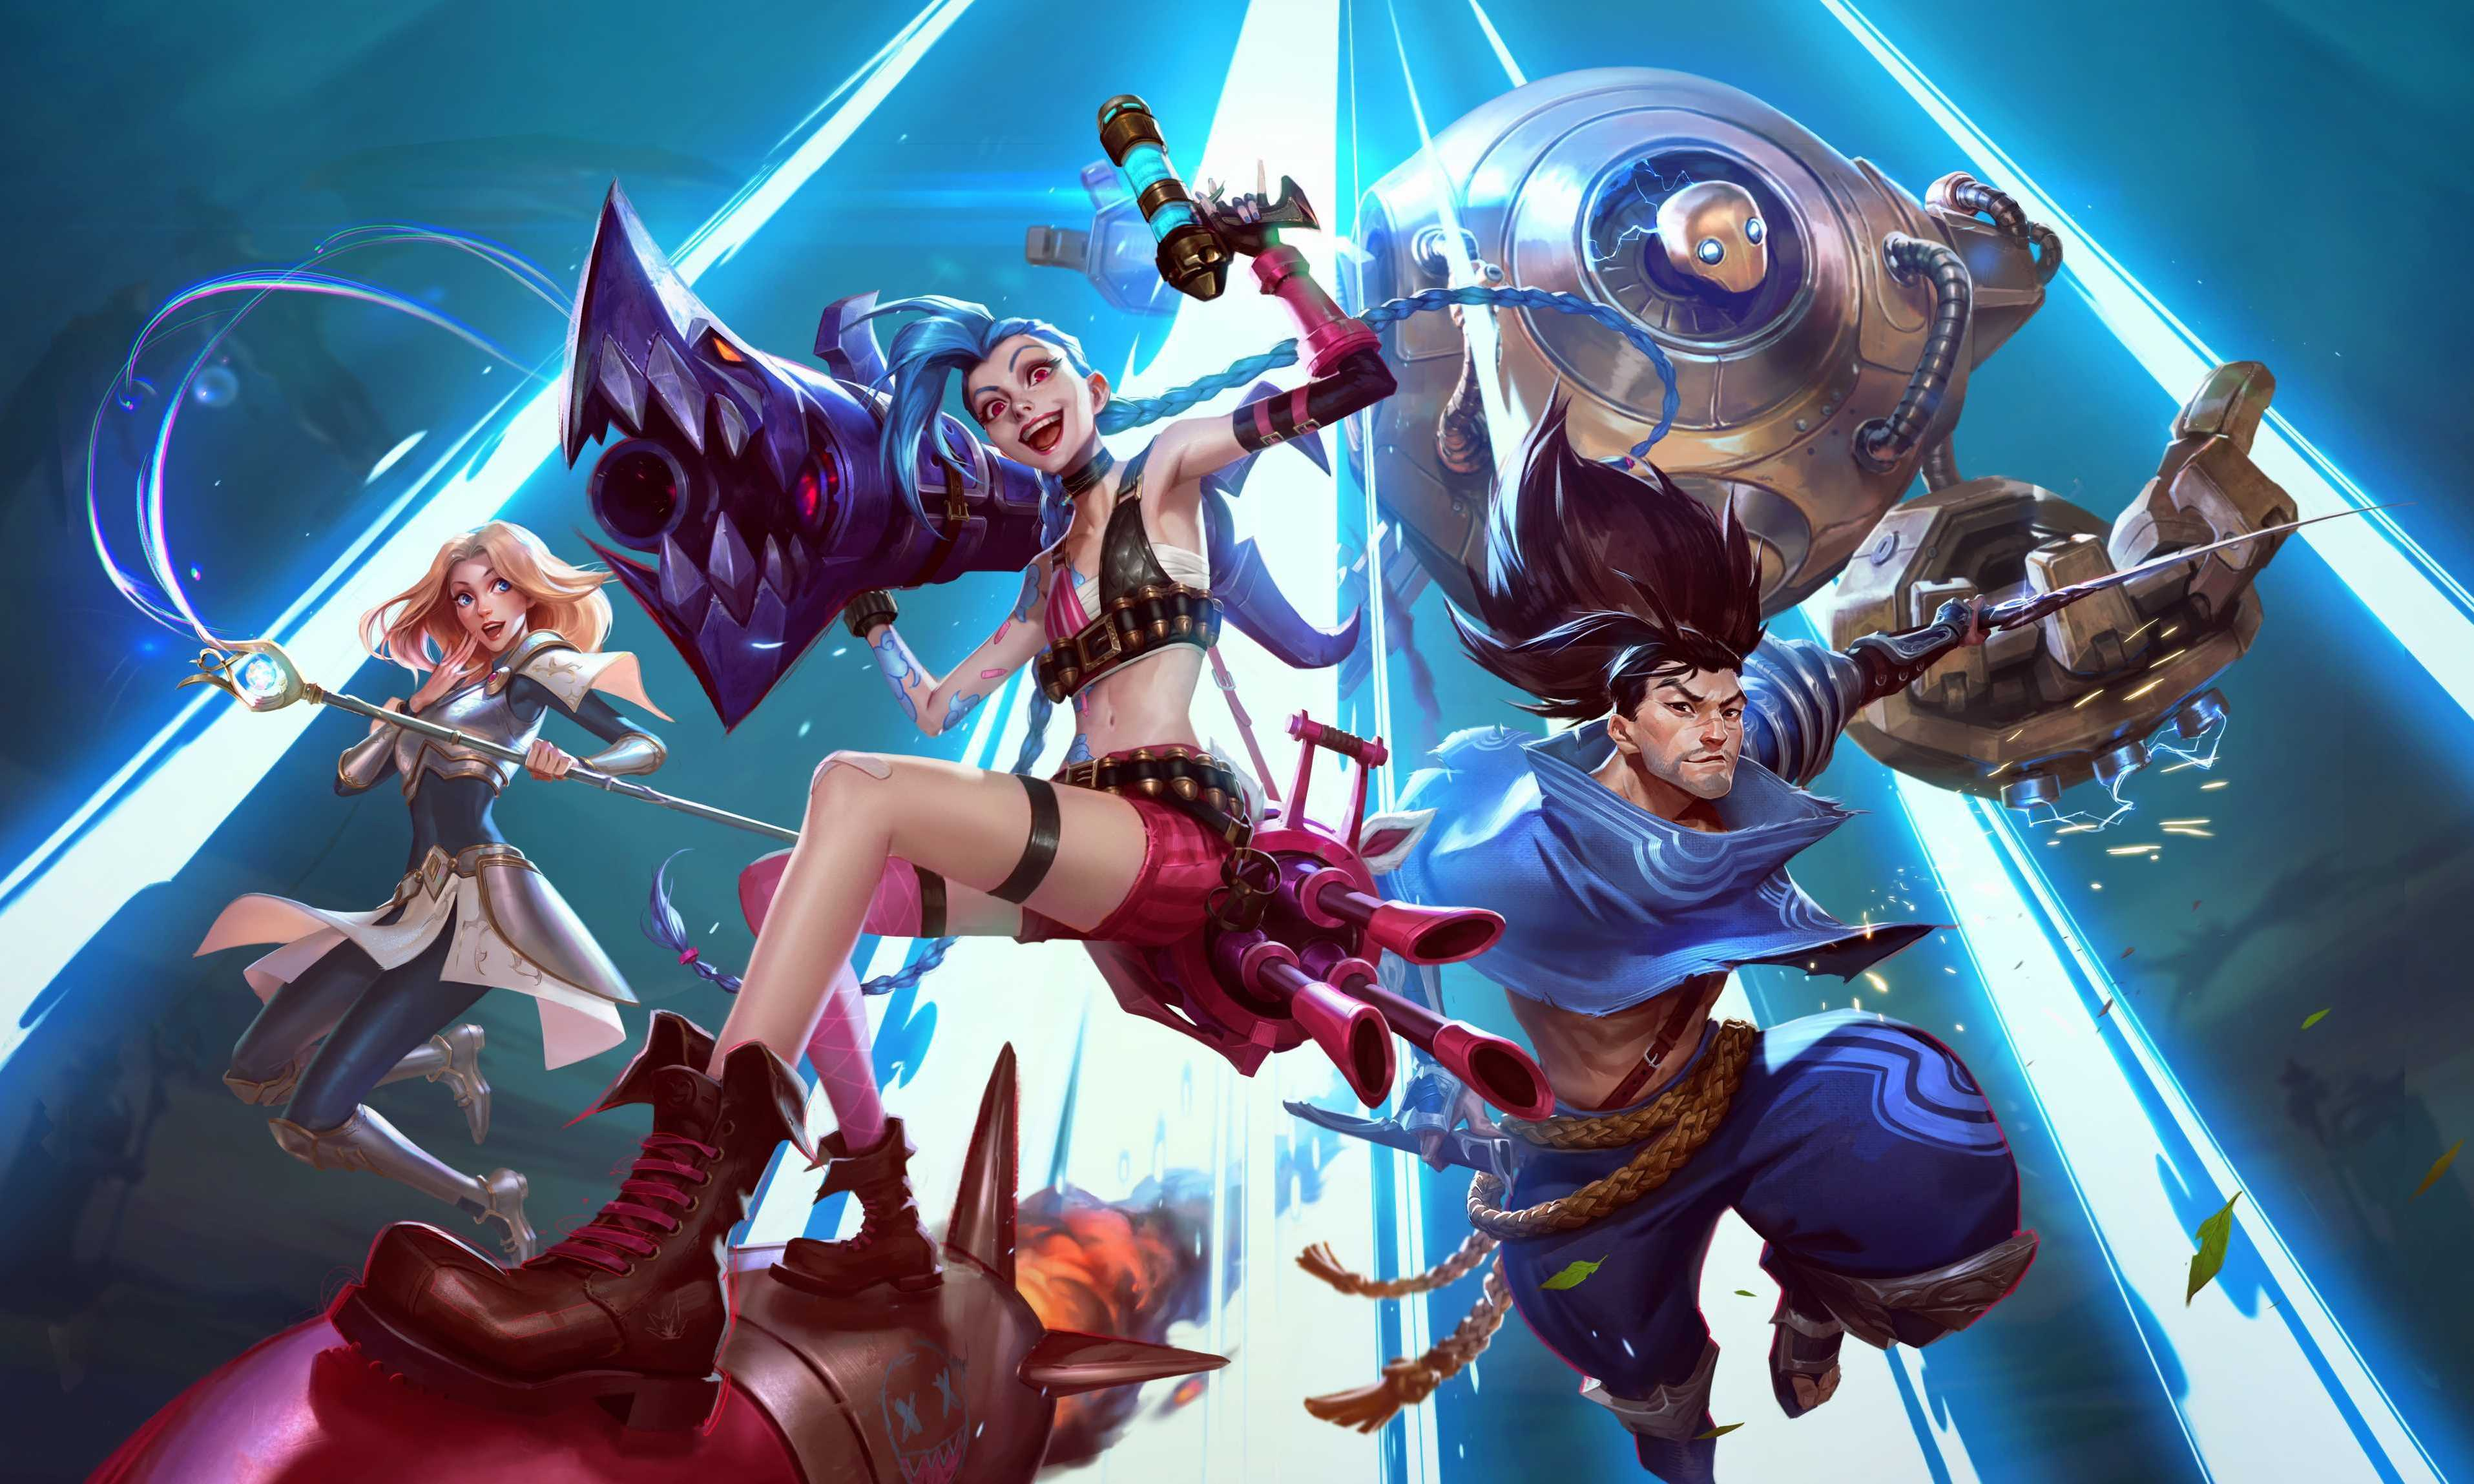 Download Hd League Of Legends With New App Wallpaper